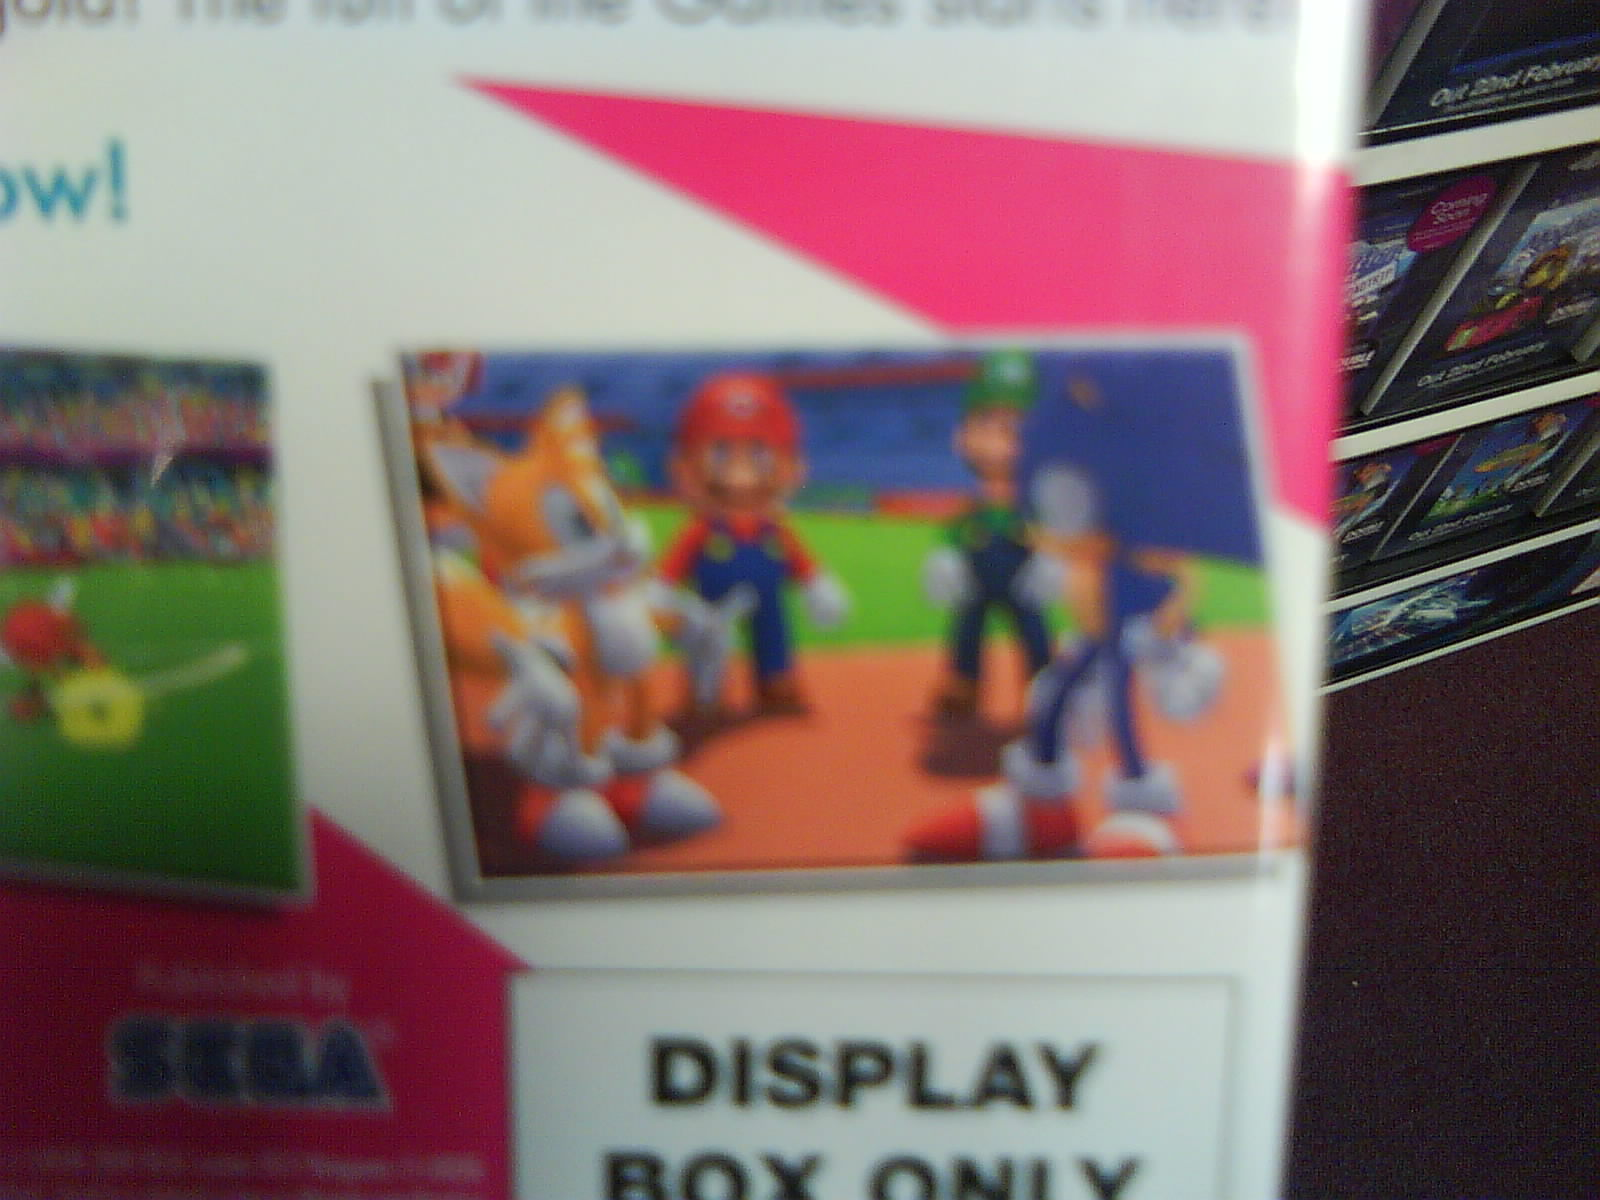 3 New Mario & Sonic at the London 2012 Olympic Games 3DS Images